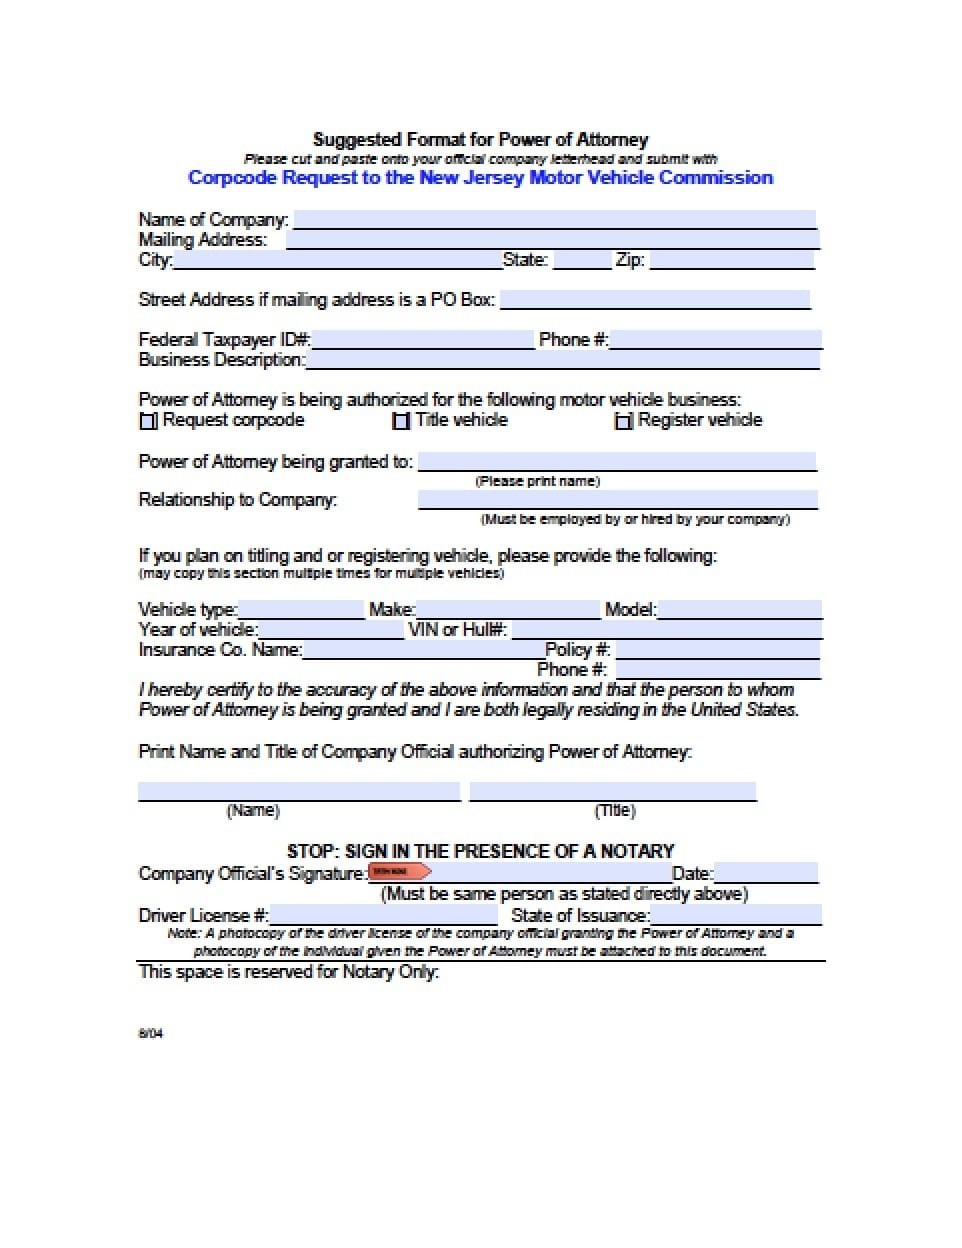 power of attorney form nj Nj Division Of Motor Vehicles Forms - Impre Media